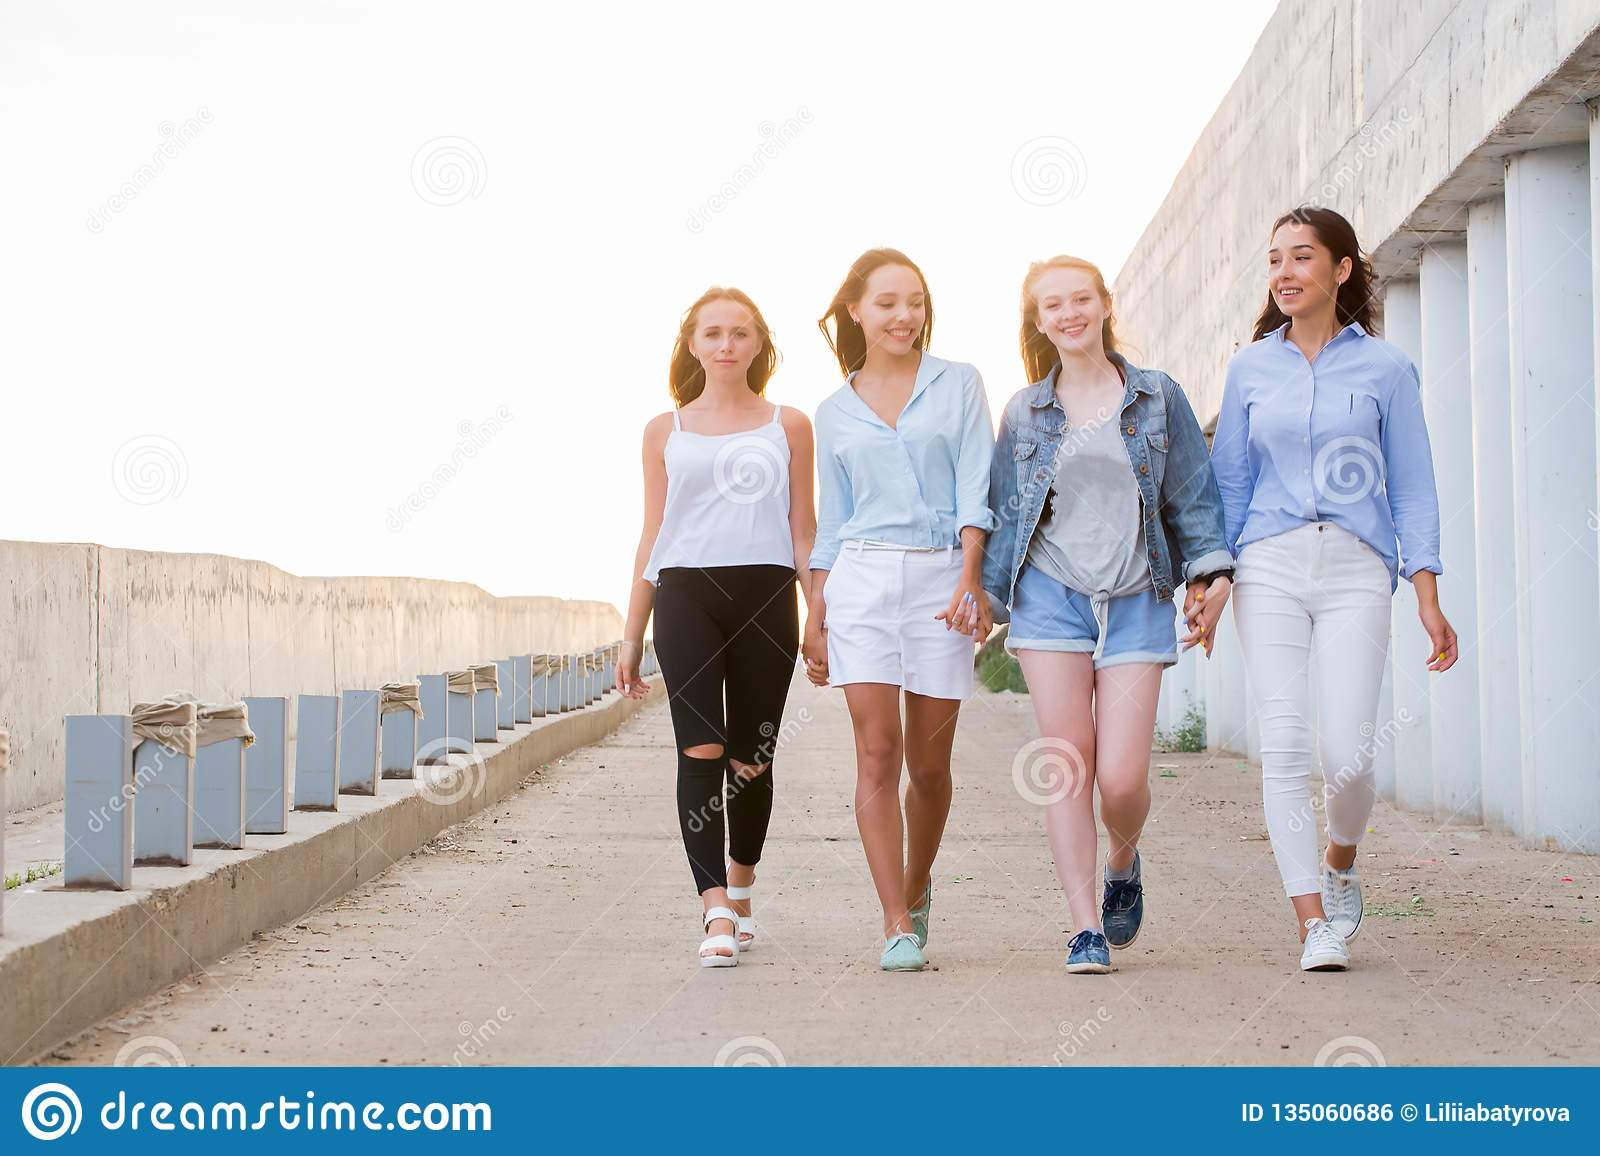 Group of female friends walking outdoor, talking, having fun and smile. togethernes, friendship, lifestyle concept